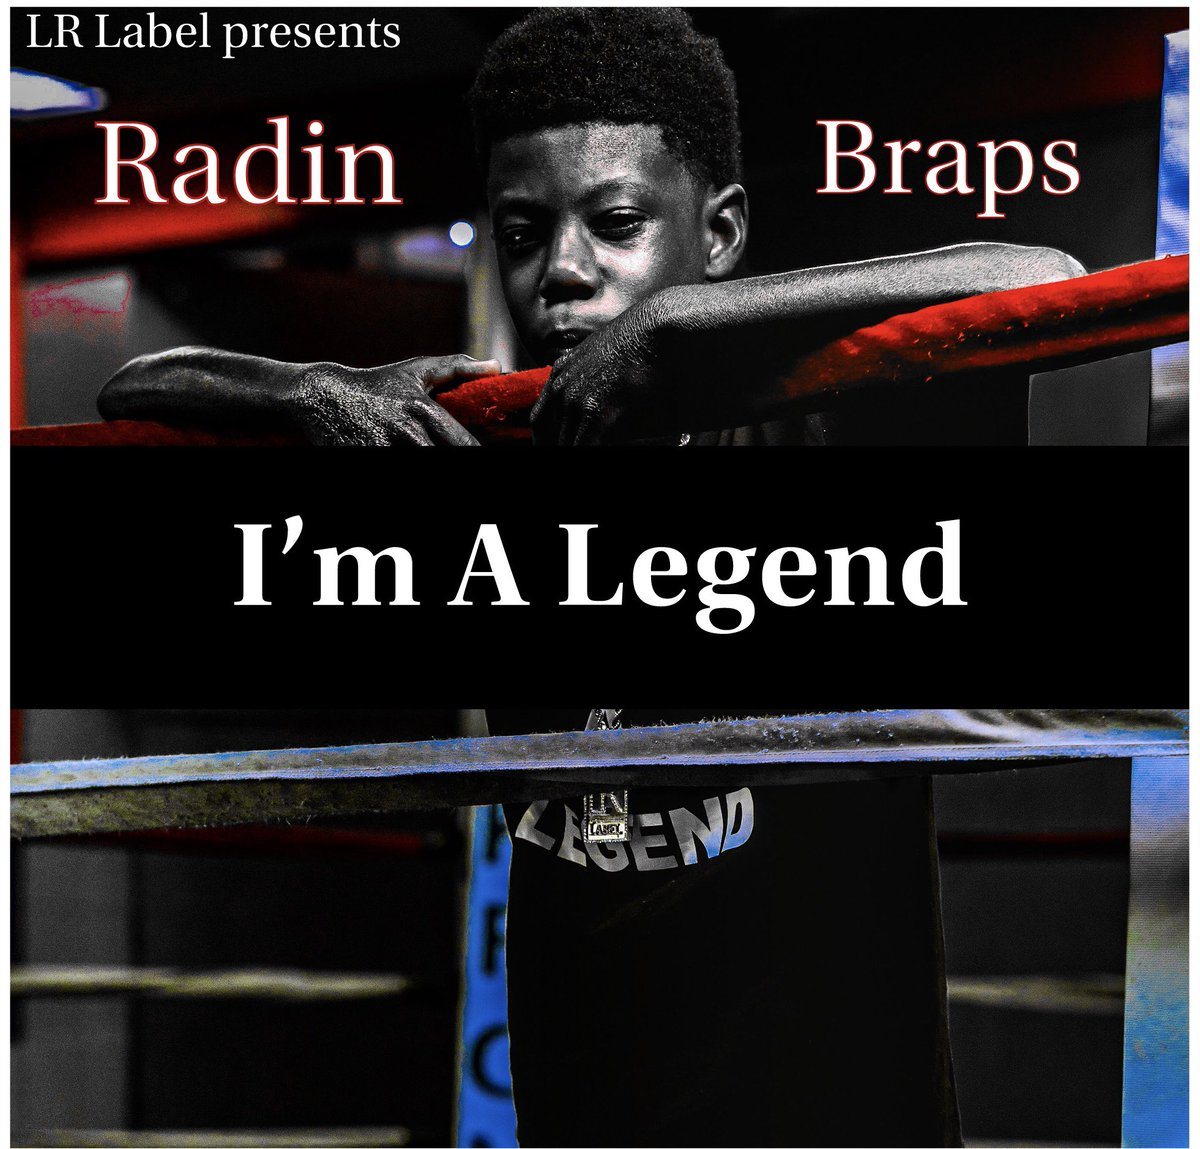 #GoodMorningGoodPeople #HipHopAwards #Dodgers Here is the artwork to one of the new artist next up on #LRLabel @RealRadinBraps #IMALegend #ComingSoon #LRLabel https://t.co/X0wWoLfo4M